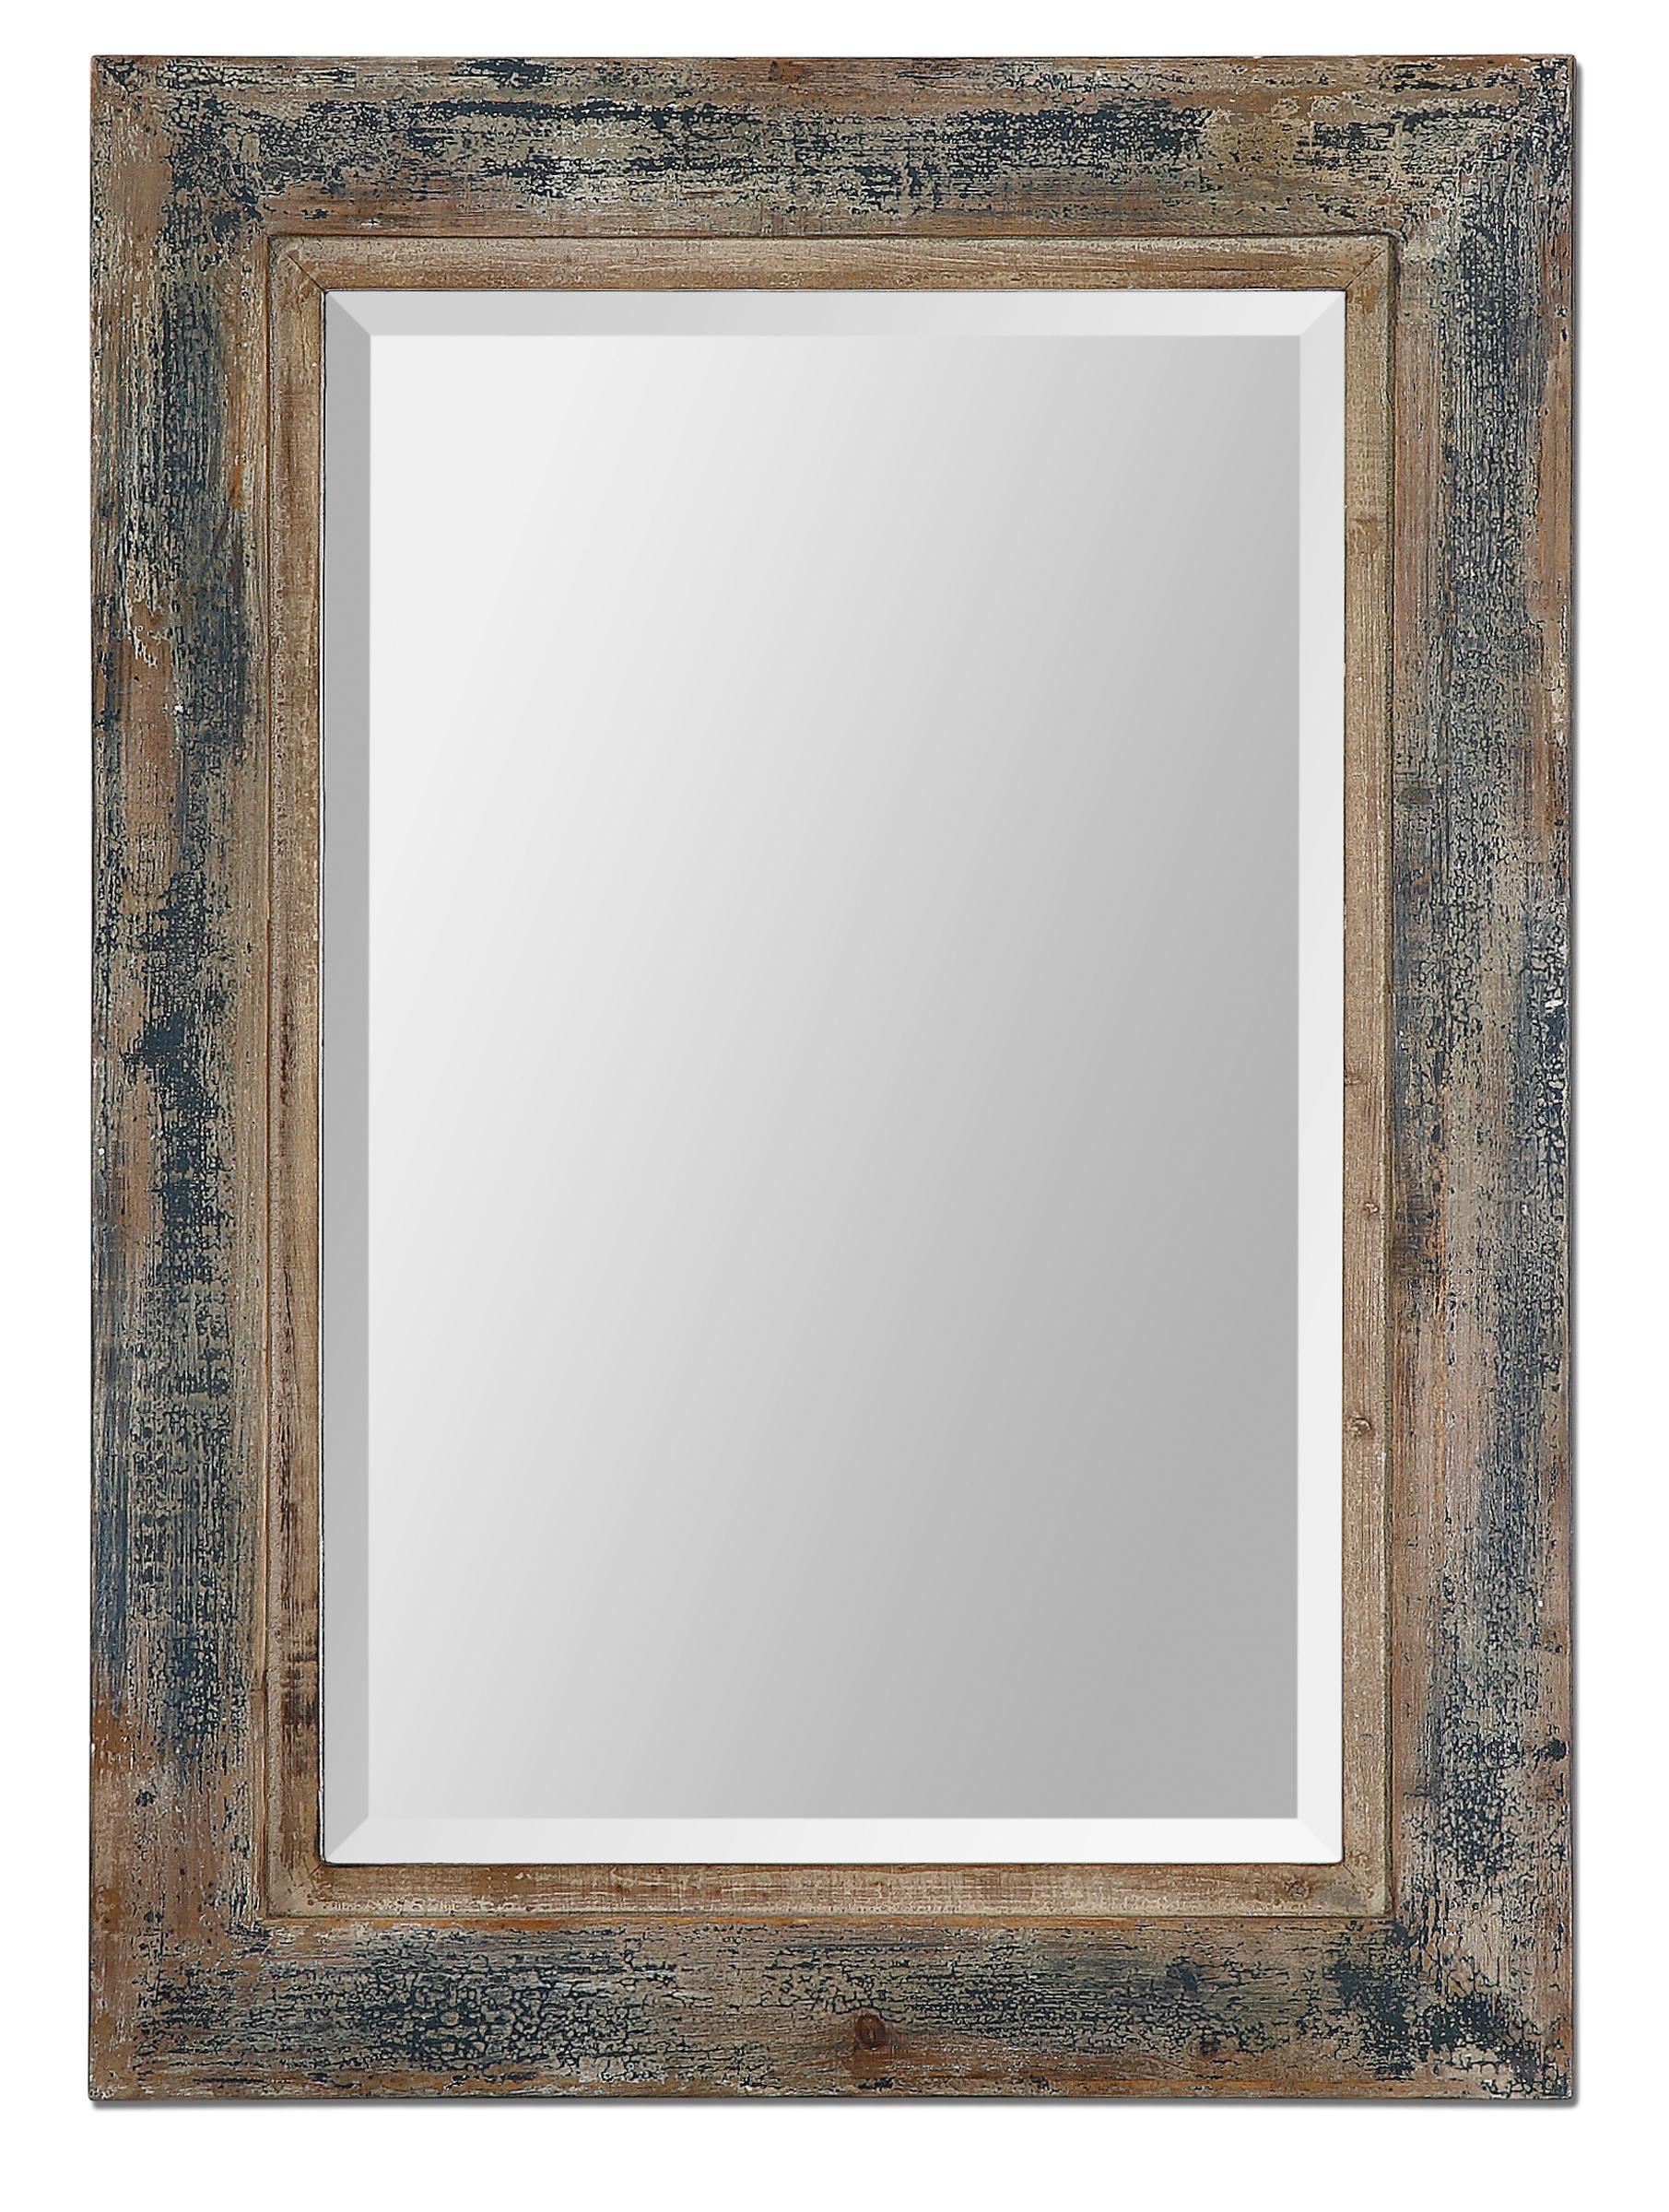 Mirrors Bozeman by Uttermost at Suburban Furniture